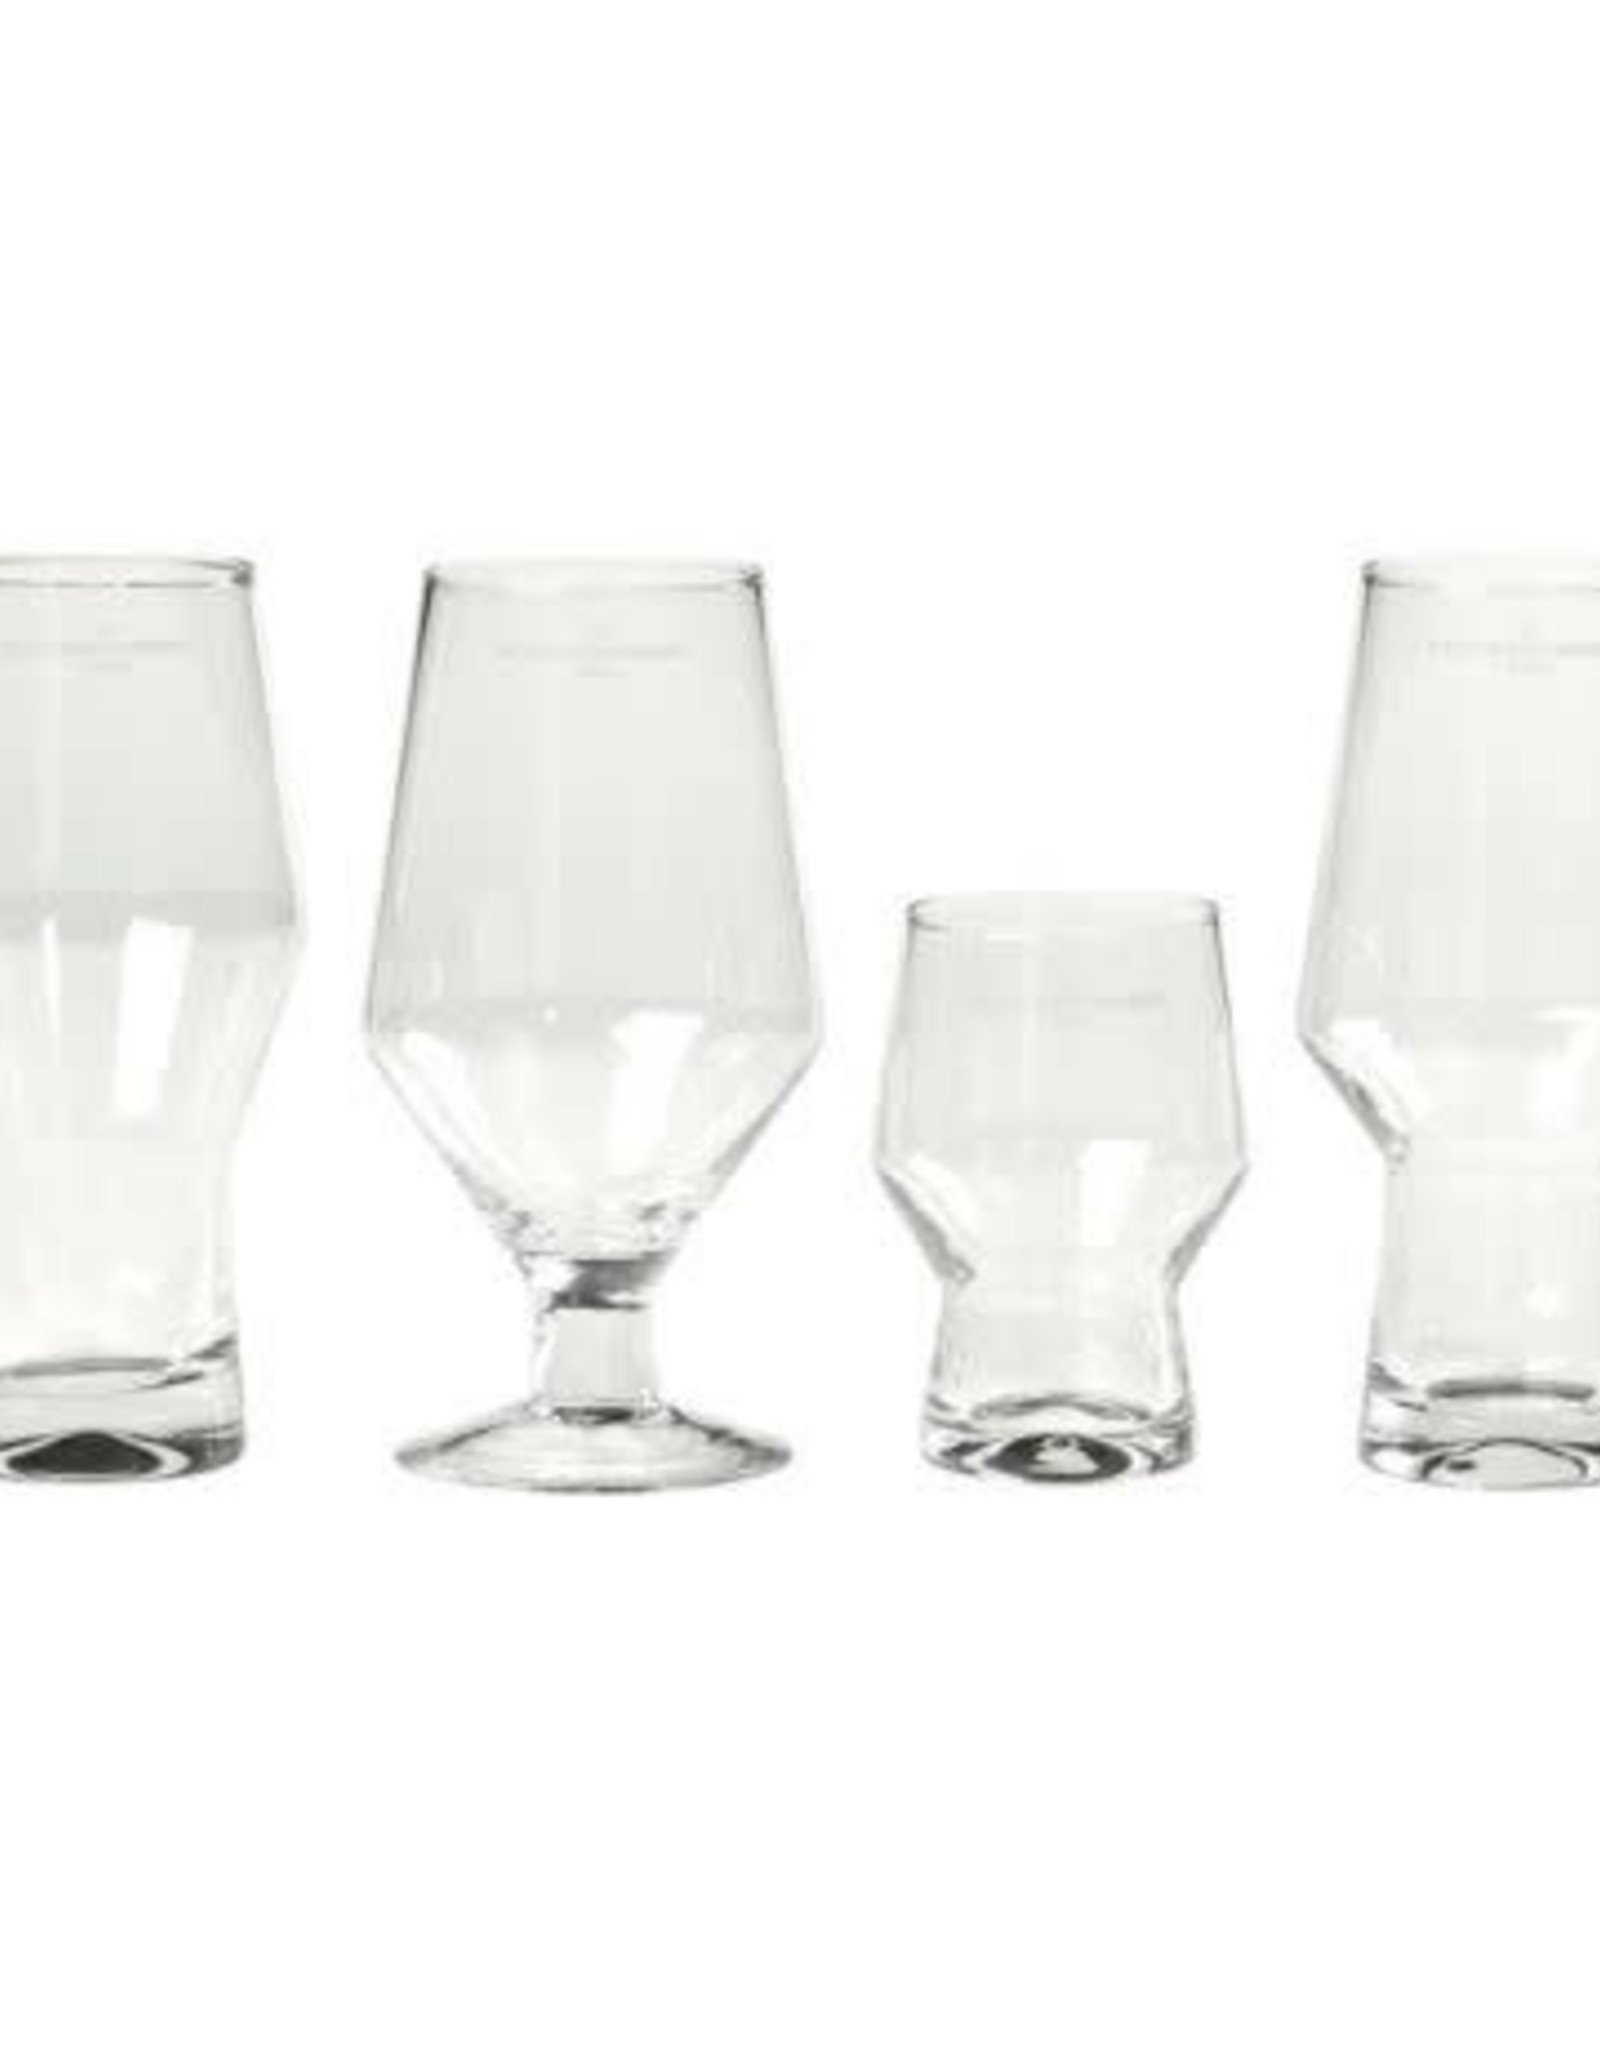 Gentlemen's Hardware Craft Beer Glasses